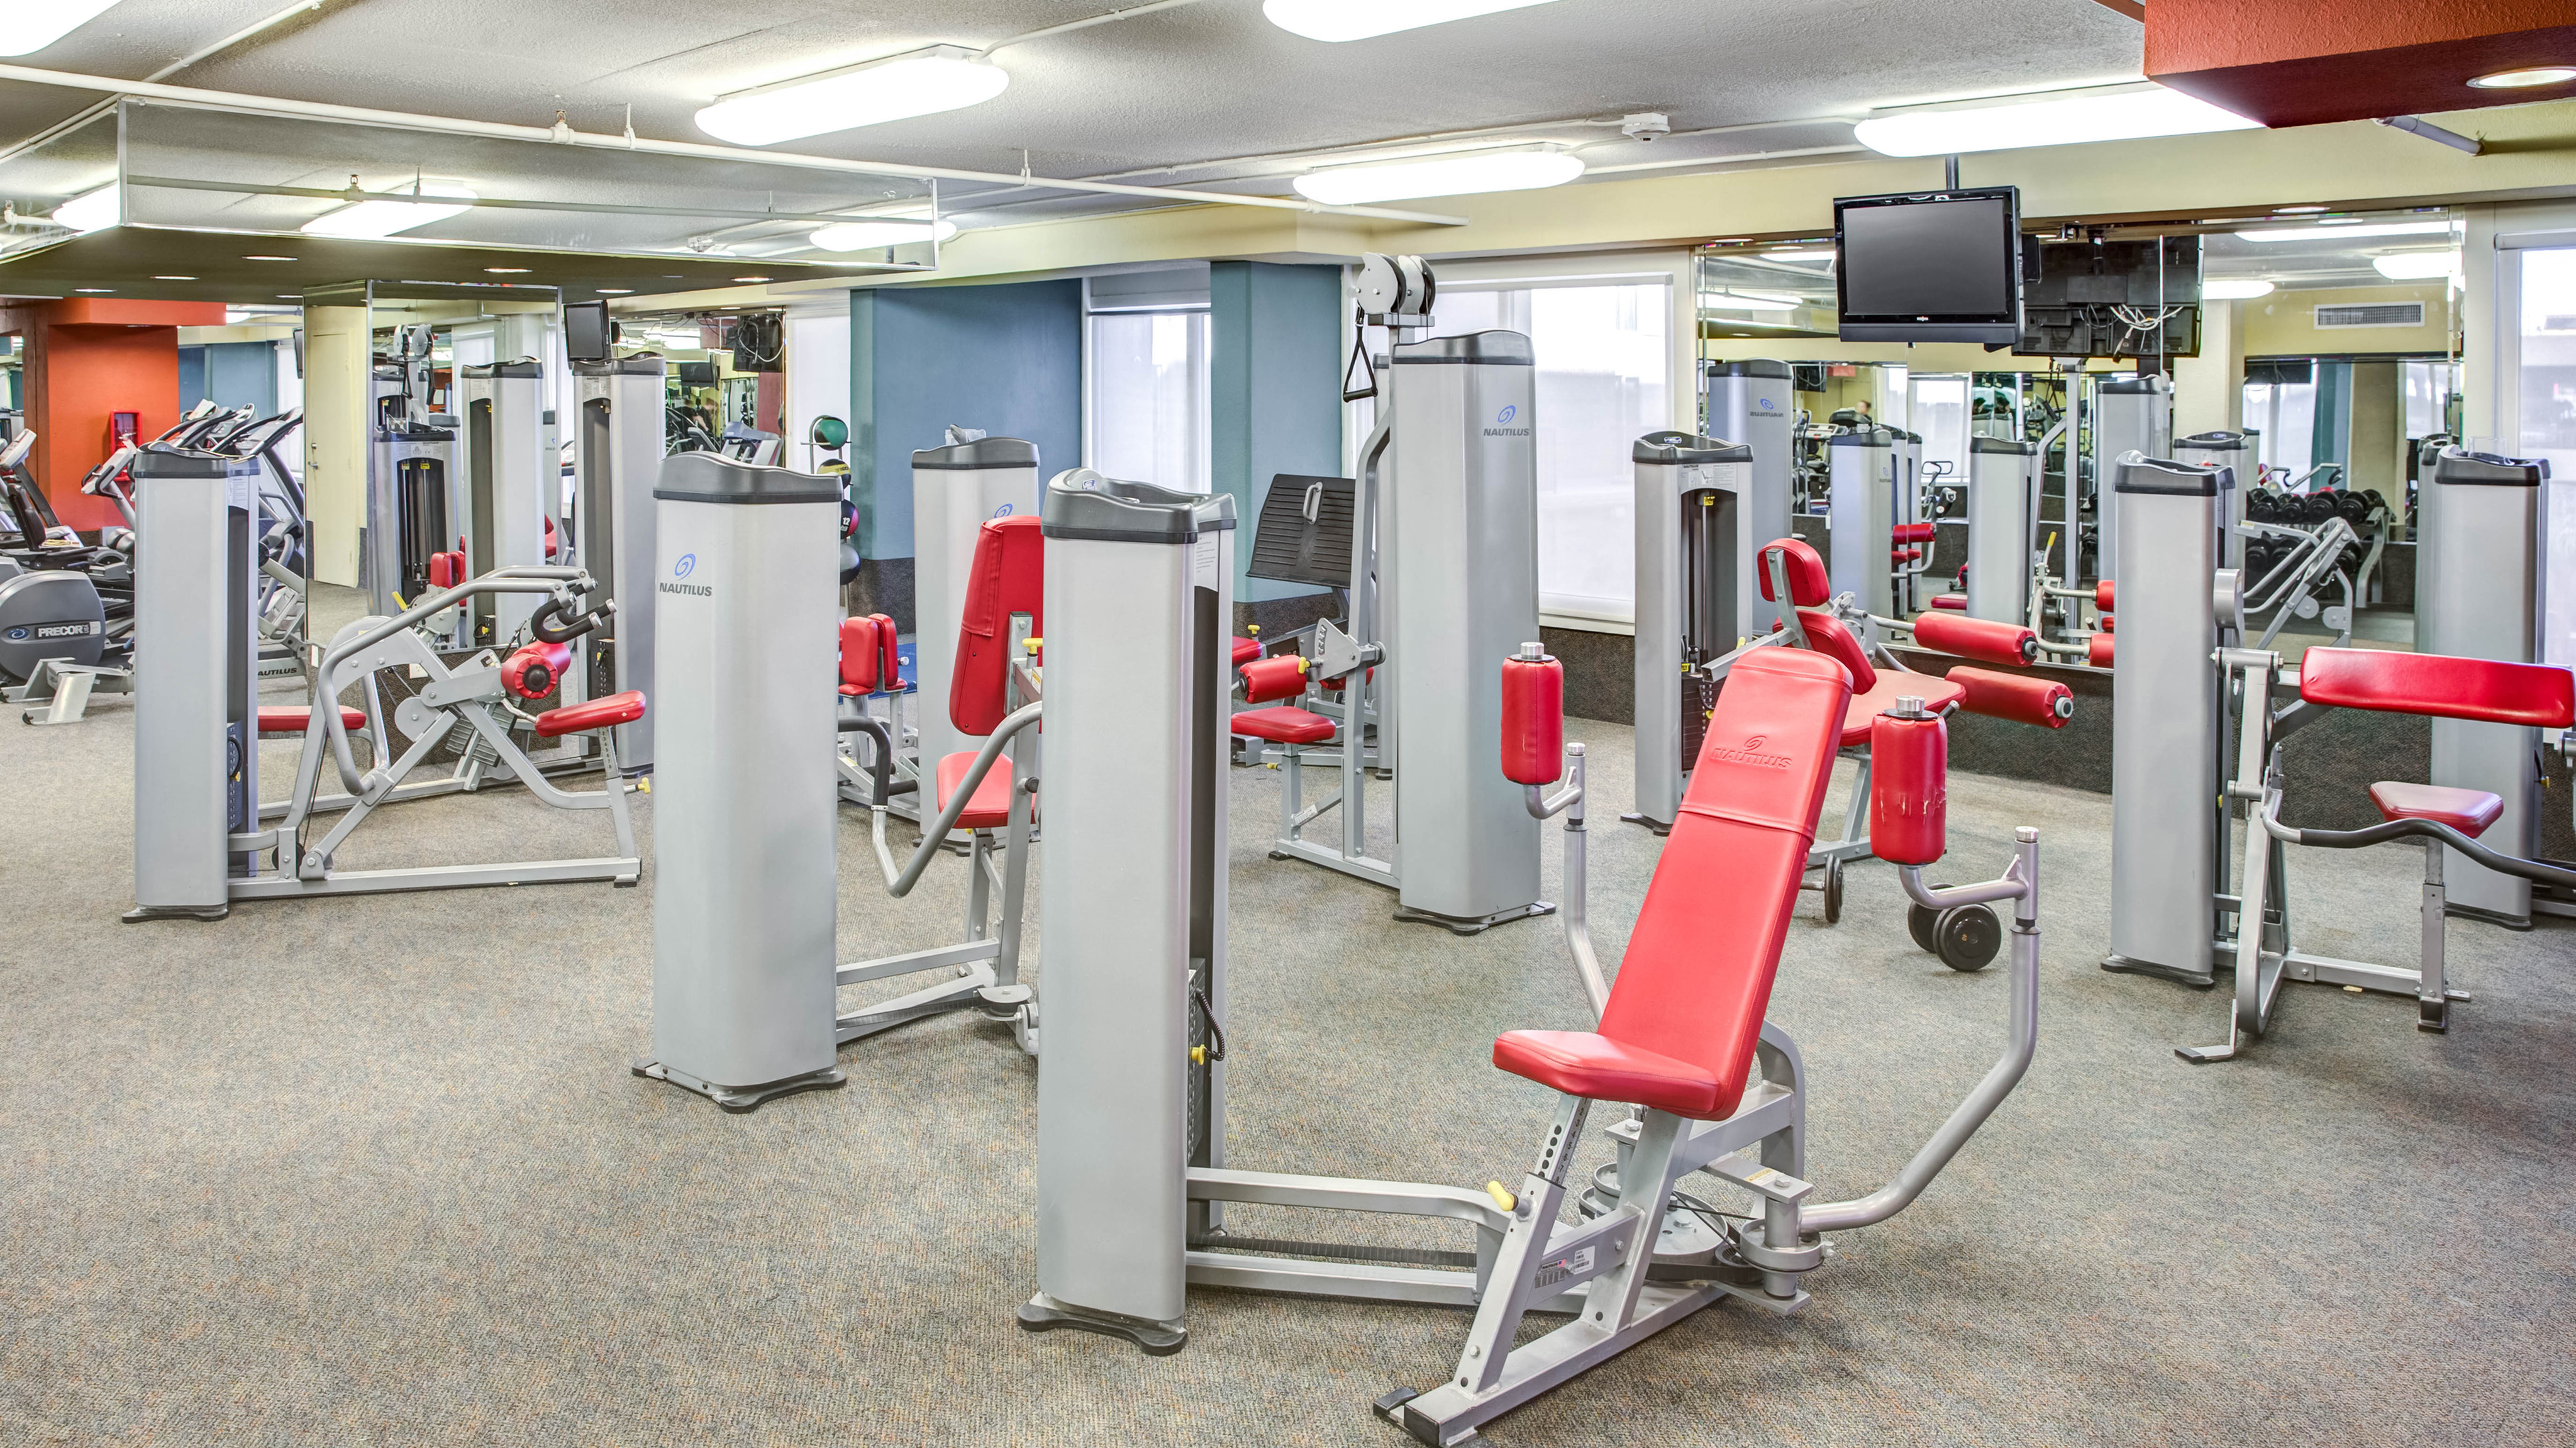 Texas Tech University Housing Fitness Gym